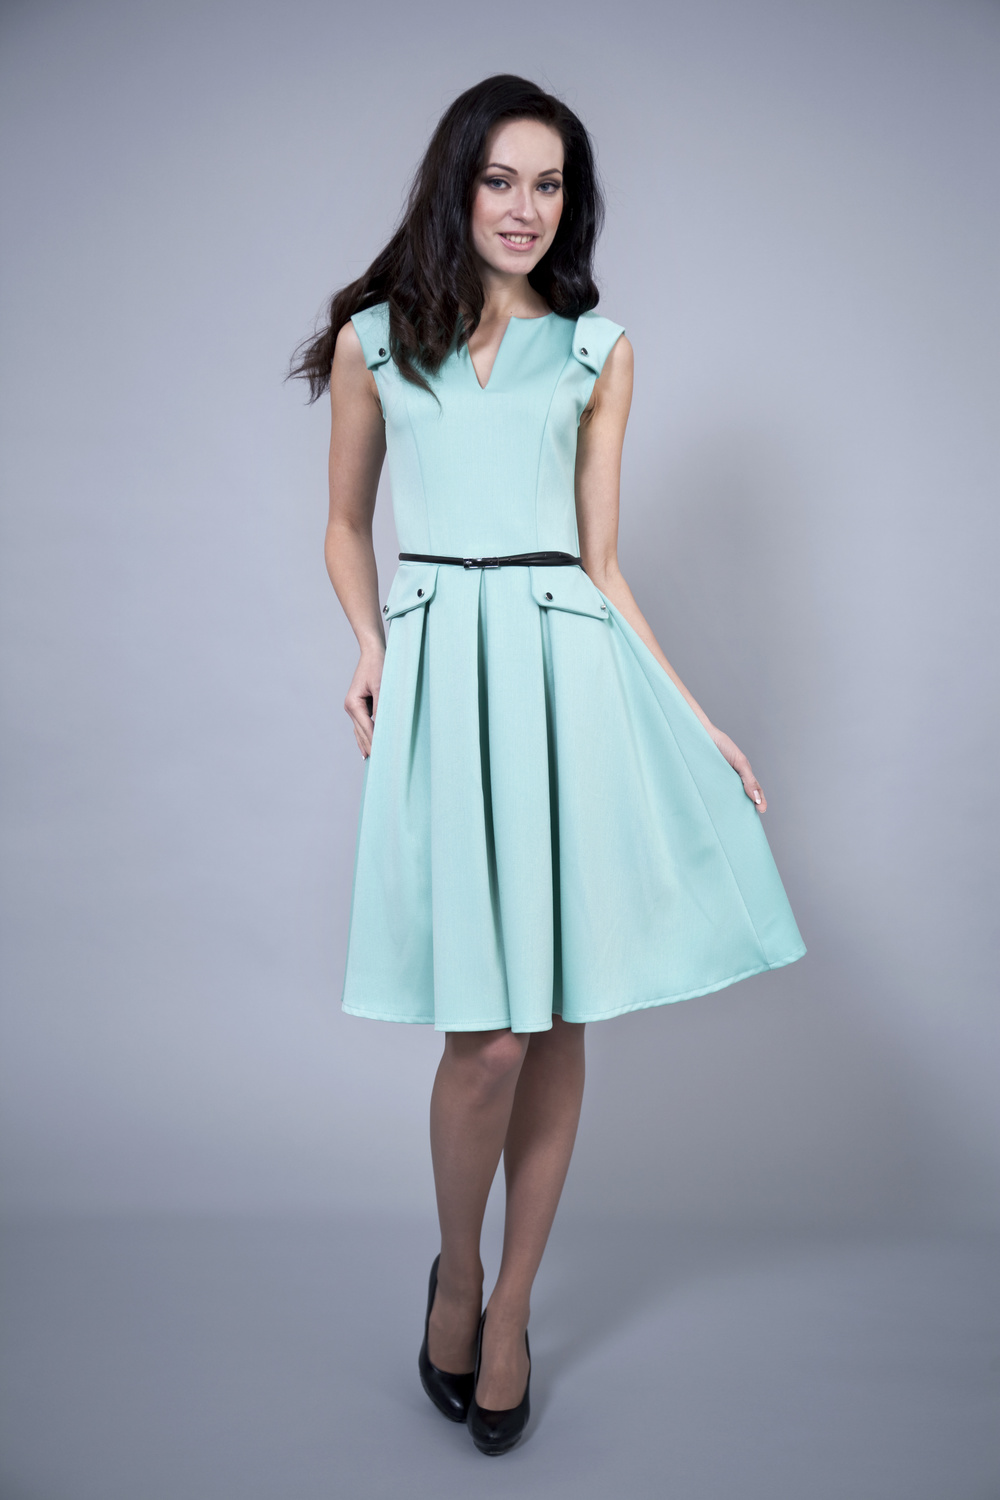 Pastel tones of rose, teal and pale green are abundant